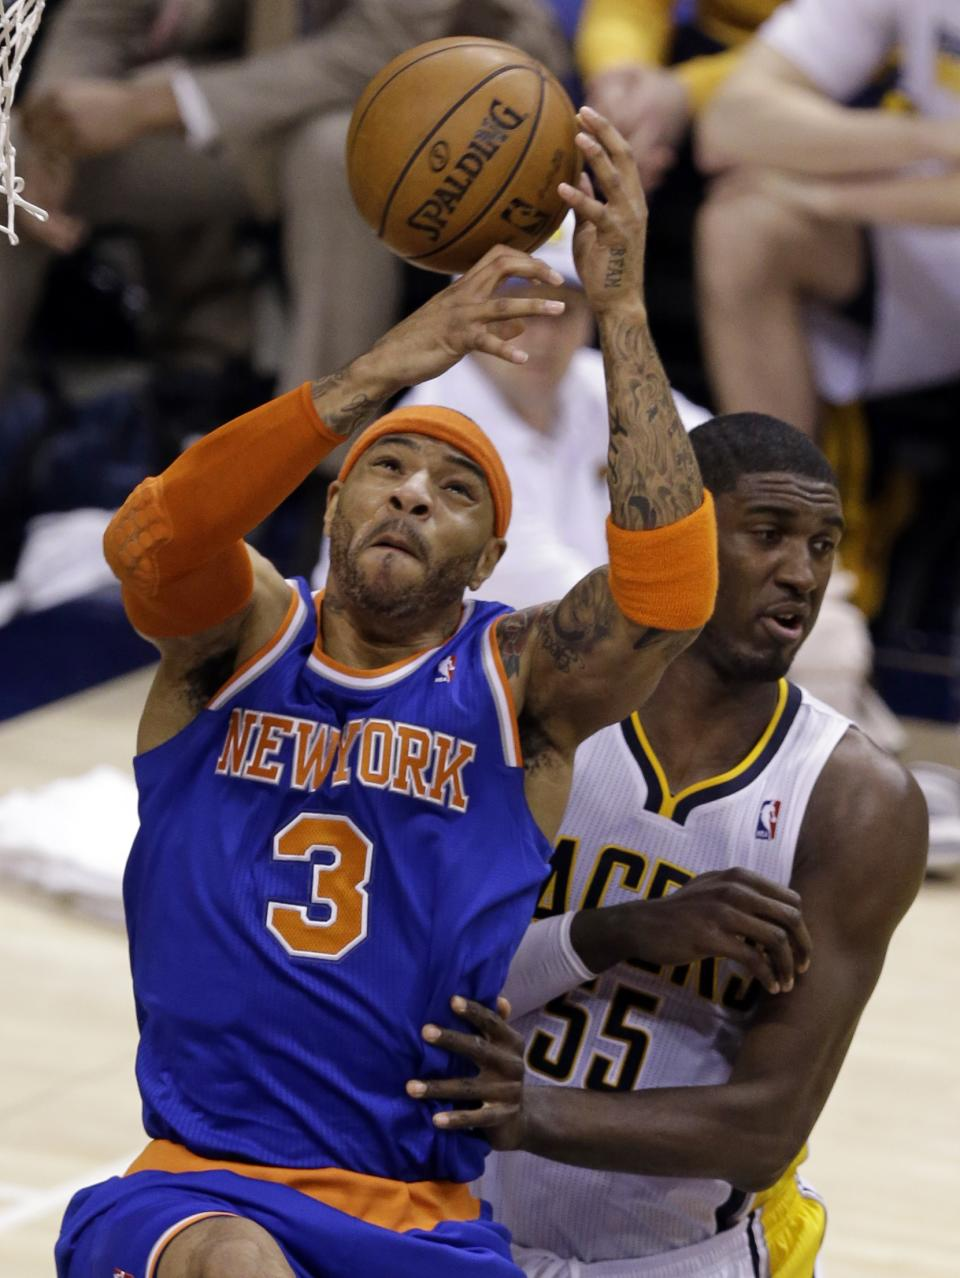 New York Knicks forward Kenyon Martin, right, grabs a rebound in front of Indiana Pacers center Roy Hibbert during the first half of Game 3 of the Eastern Conference semifinal NBA basketball playoff series in Indianapolis, Saturday, May 11, 2013.  (AP Photo/Michael Conroy)